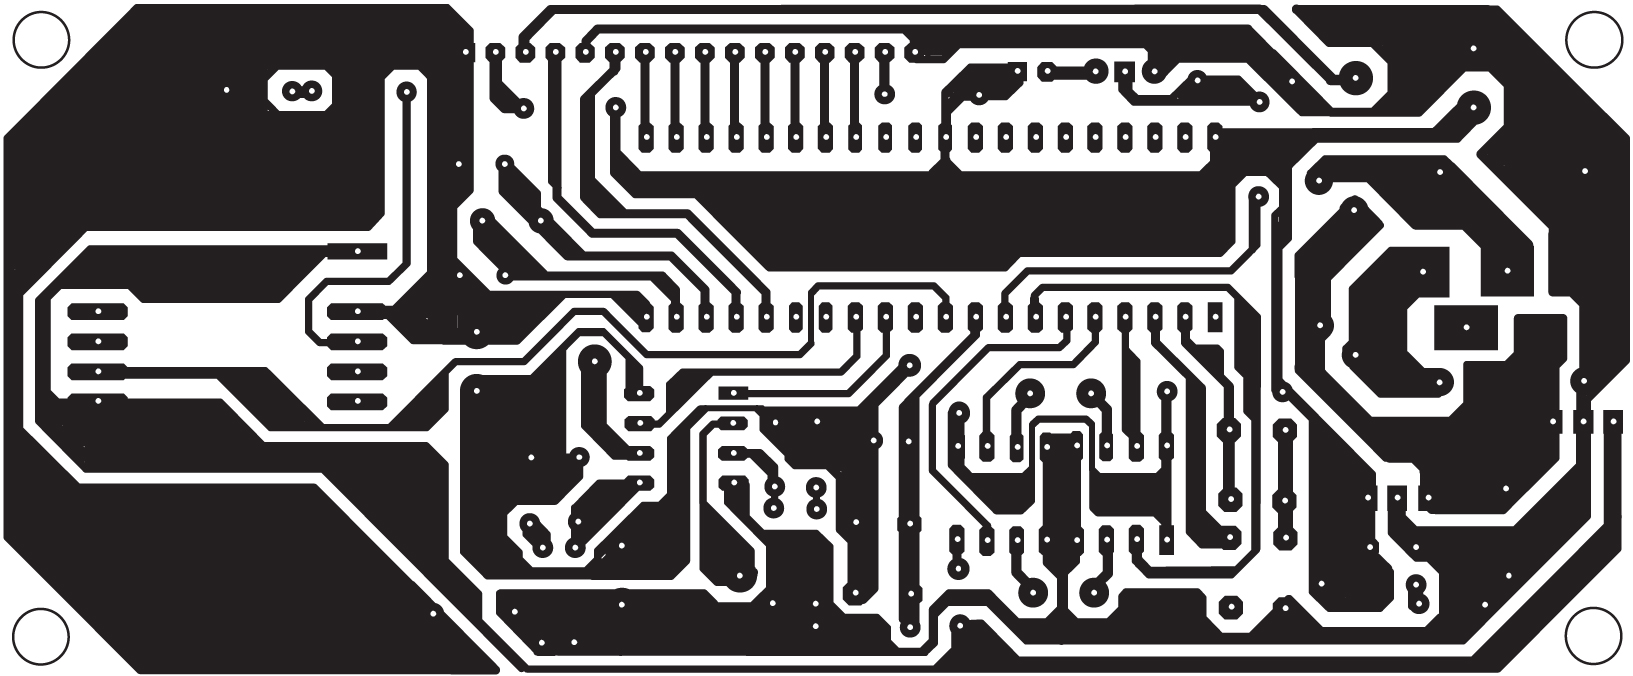 Fig. 7: An actual-size, single-side PCB for the RFID-based automatic vehicle parking system